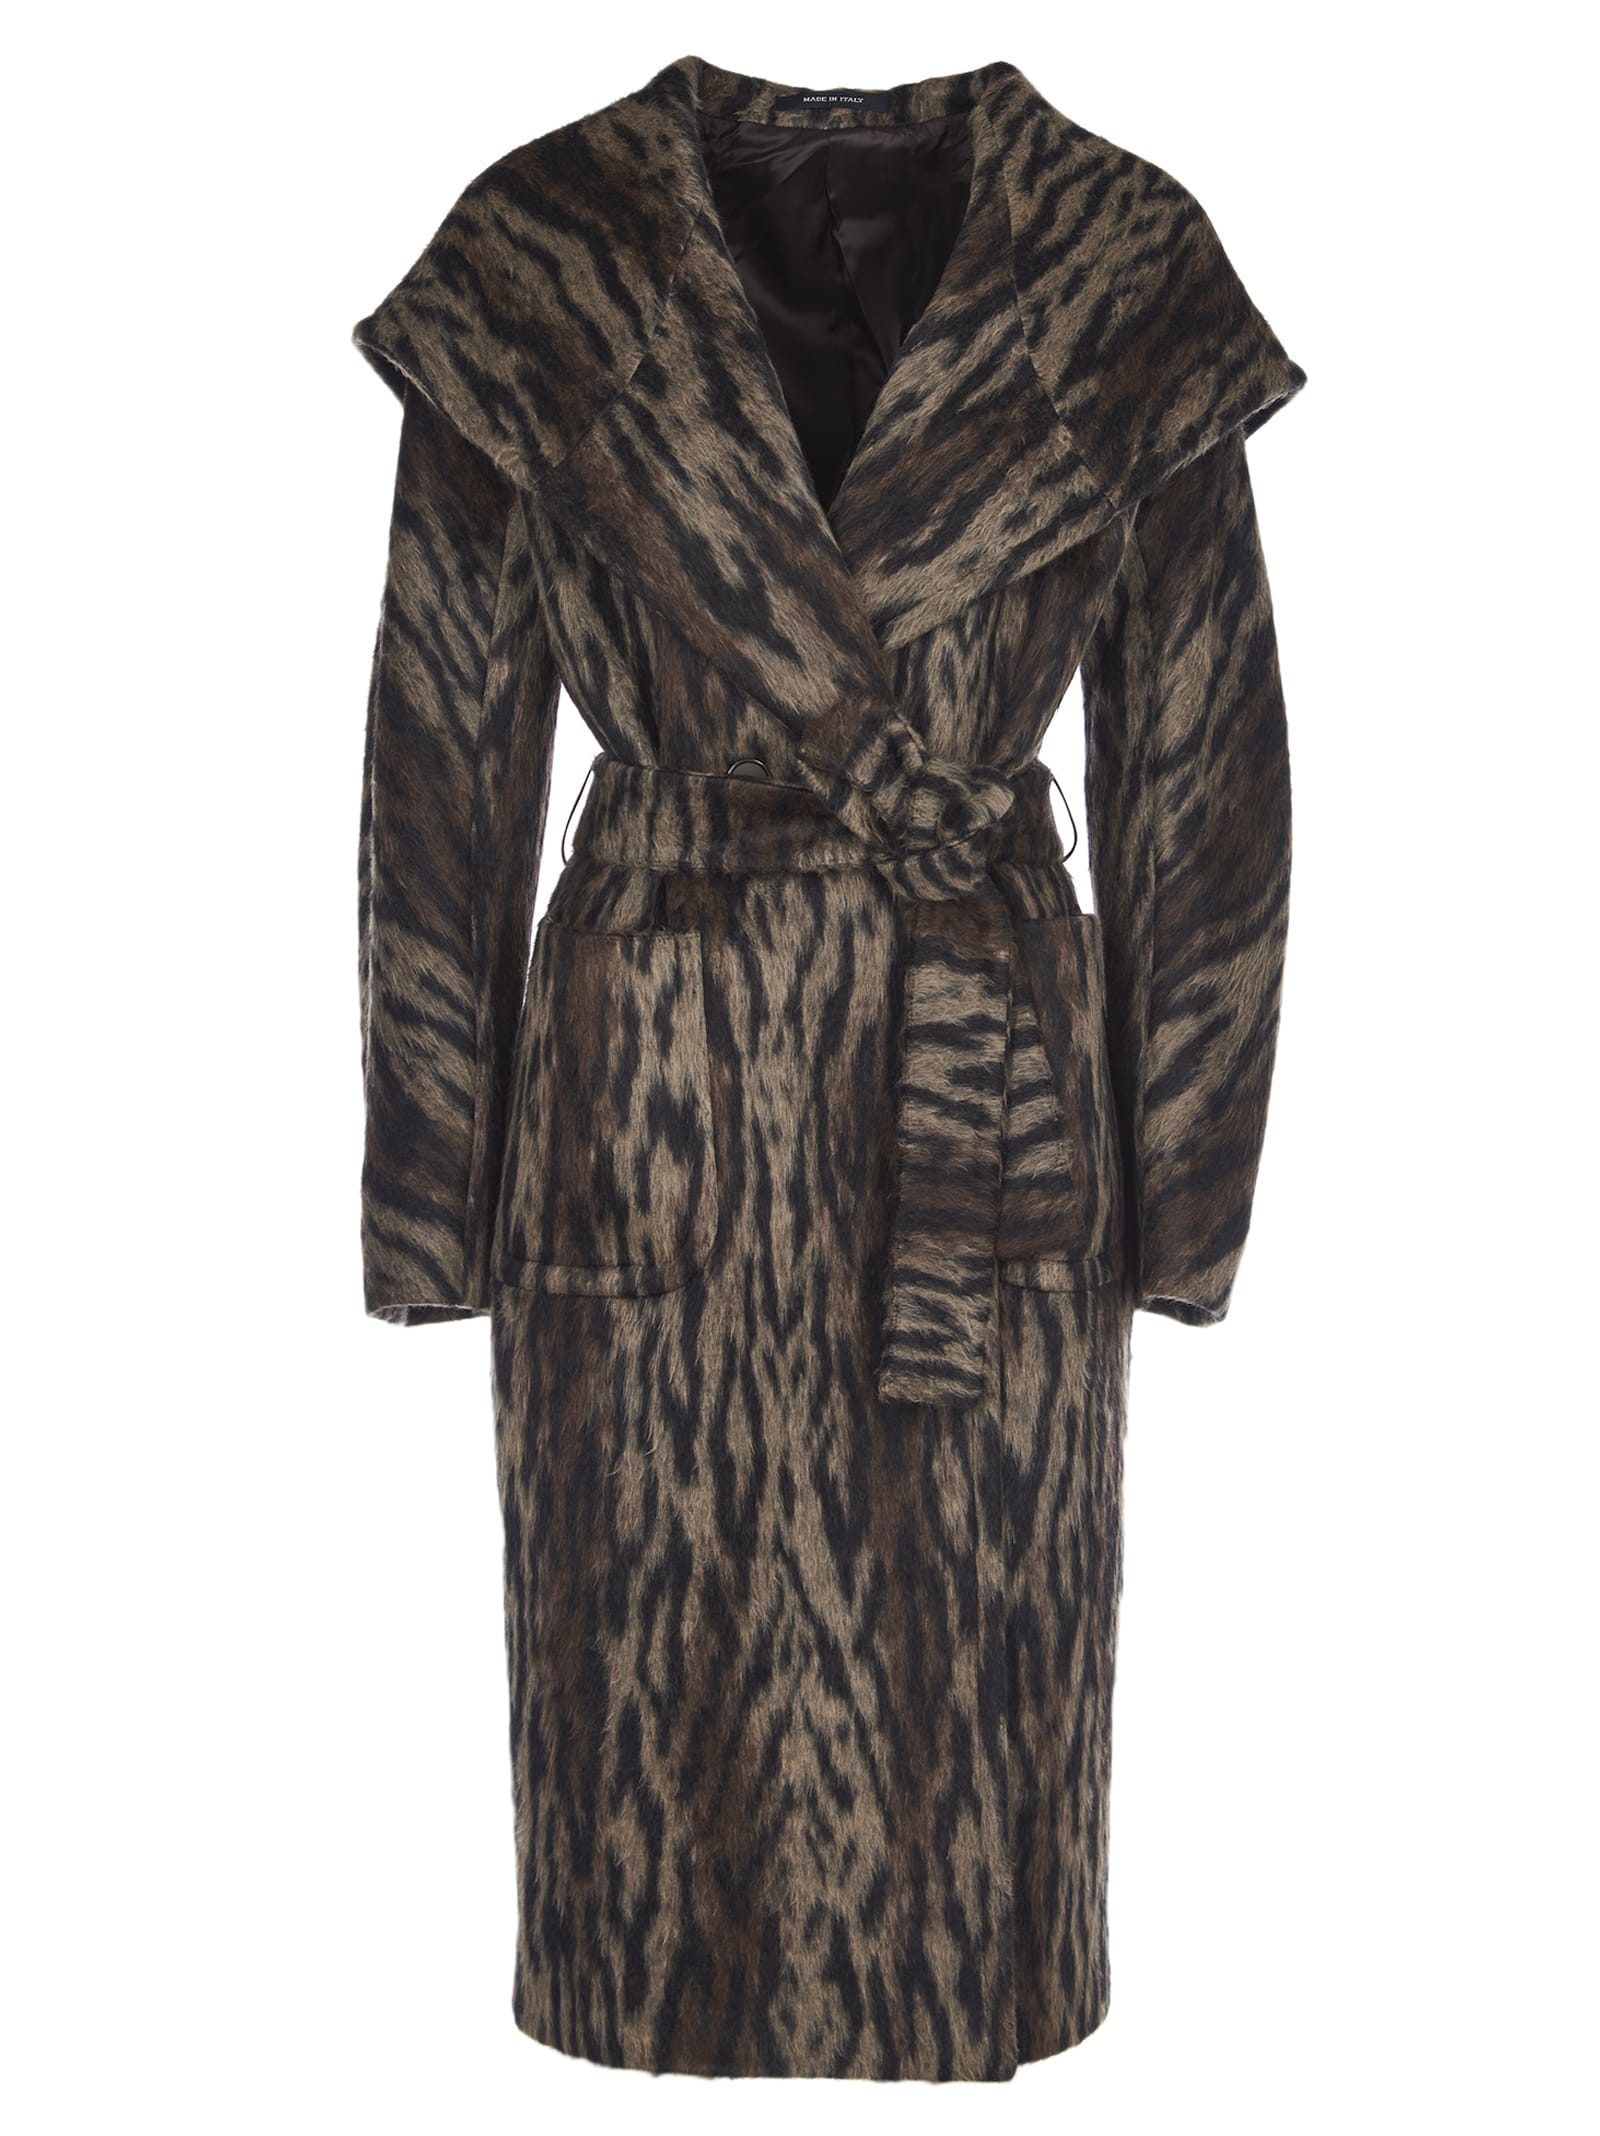 Tagliatore daisy Coat In Brown Zebra Print